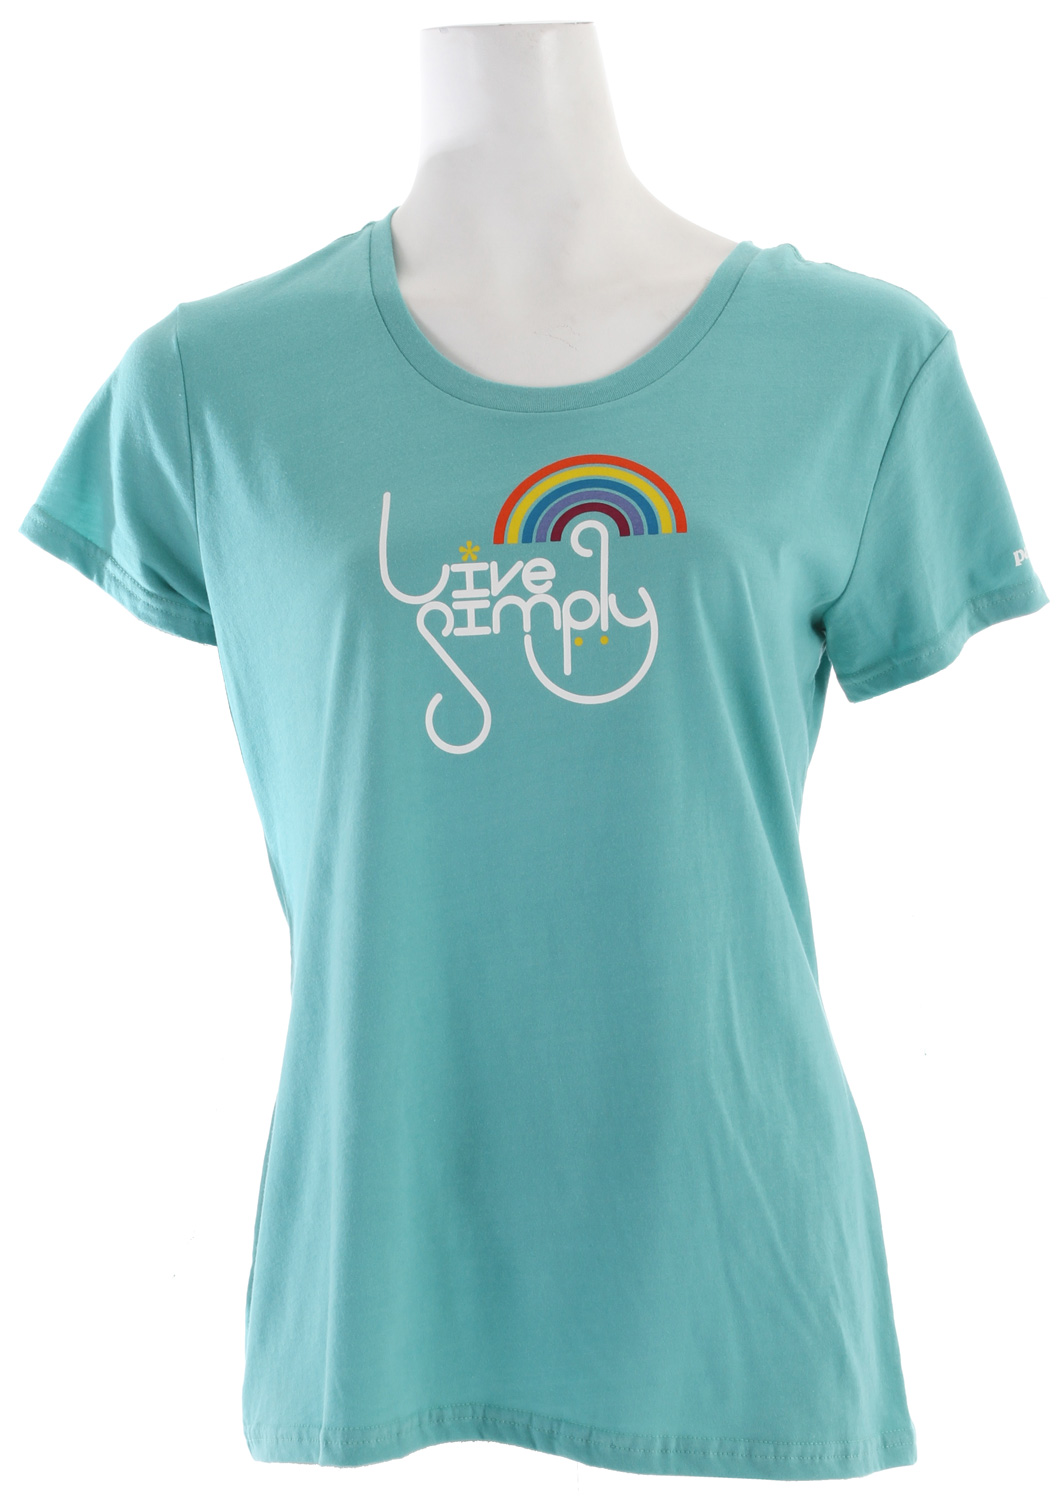 Somewhere over the rainbow, you can live simply. Original art by Blaine Fontana on a 100% organic cotton T-shirt. fabric: 4-oz 100% organic cottonKey Features of the Patagonia Live Simply Rainbow T-Shirt: Screen-print inks are PVC- and phthalate-free Taped shoulder seams for comfort Super soft, 40 singles 100% organic cotton jersey Anika fit - $24.95